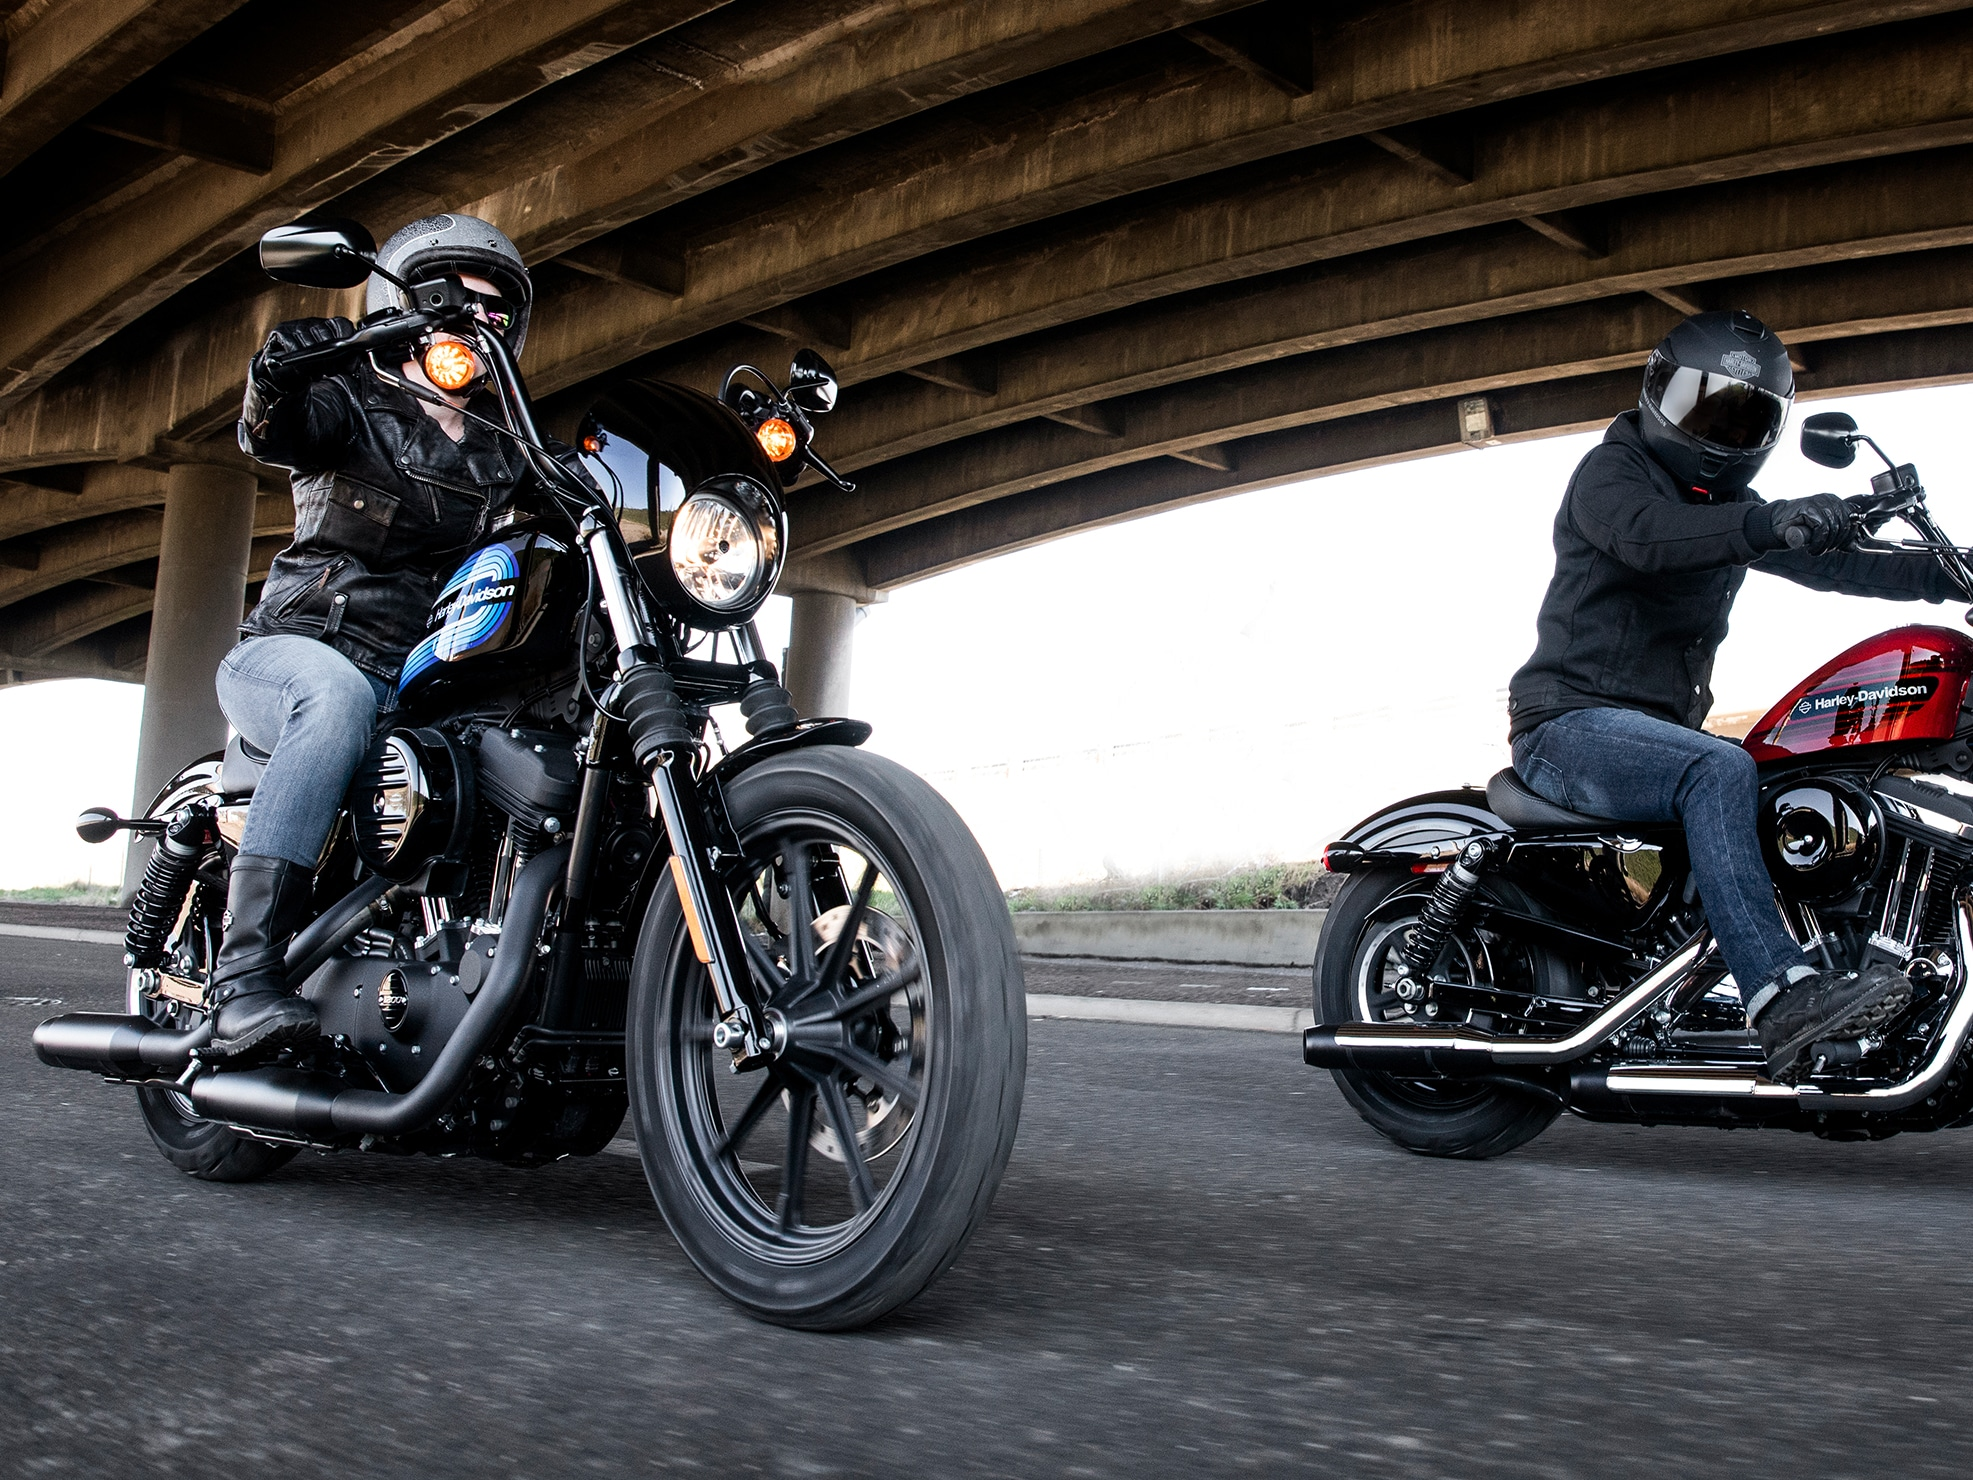 Men Riding 2019 H-D Sportster Motorcycle